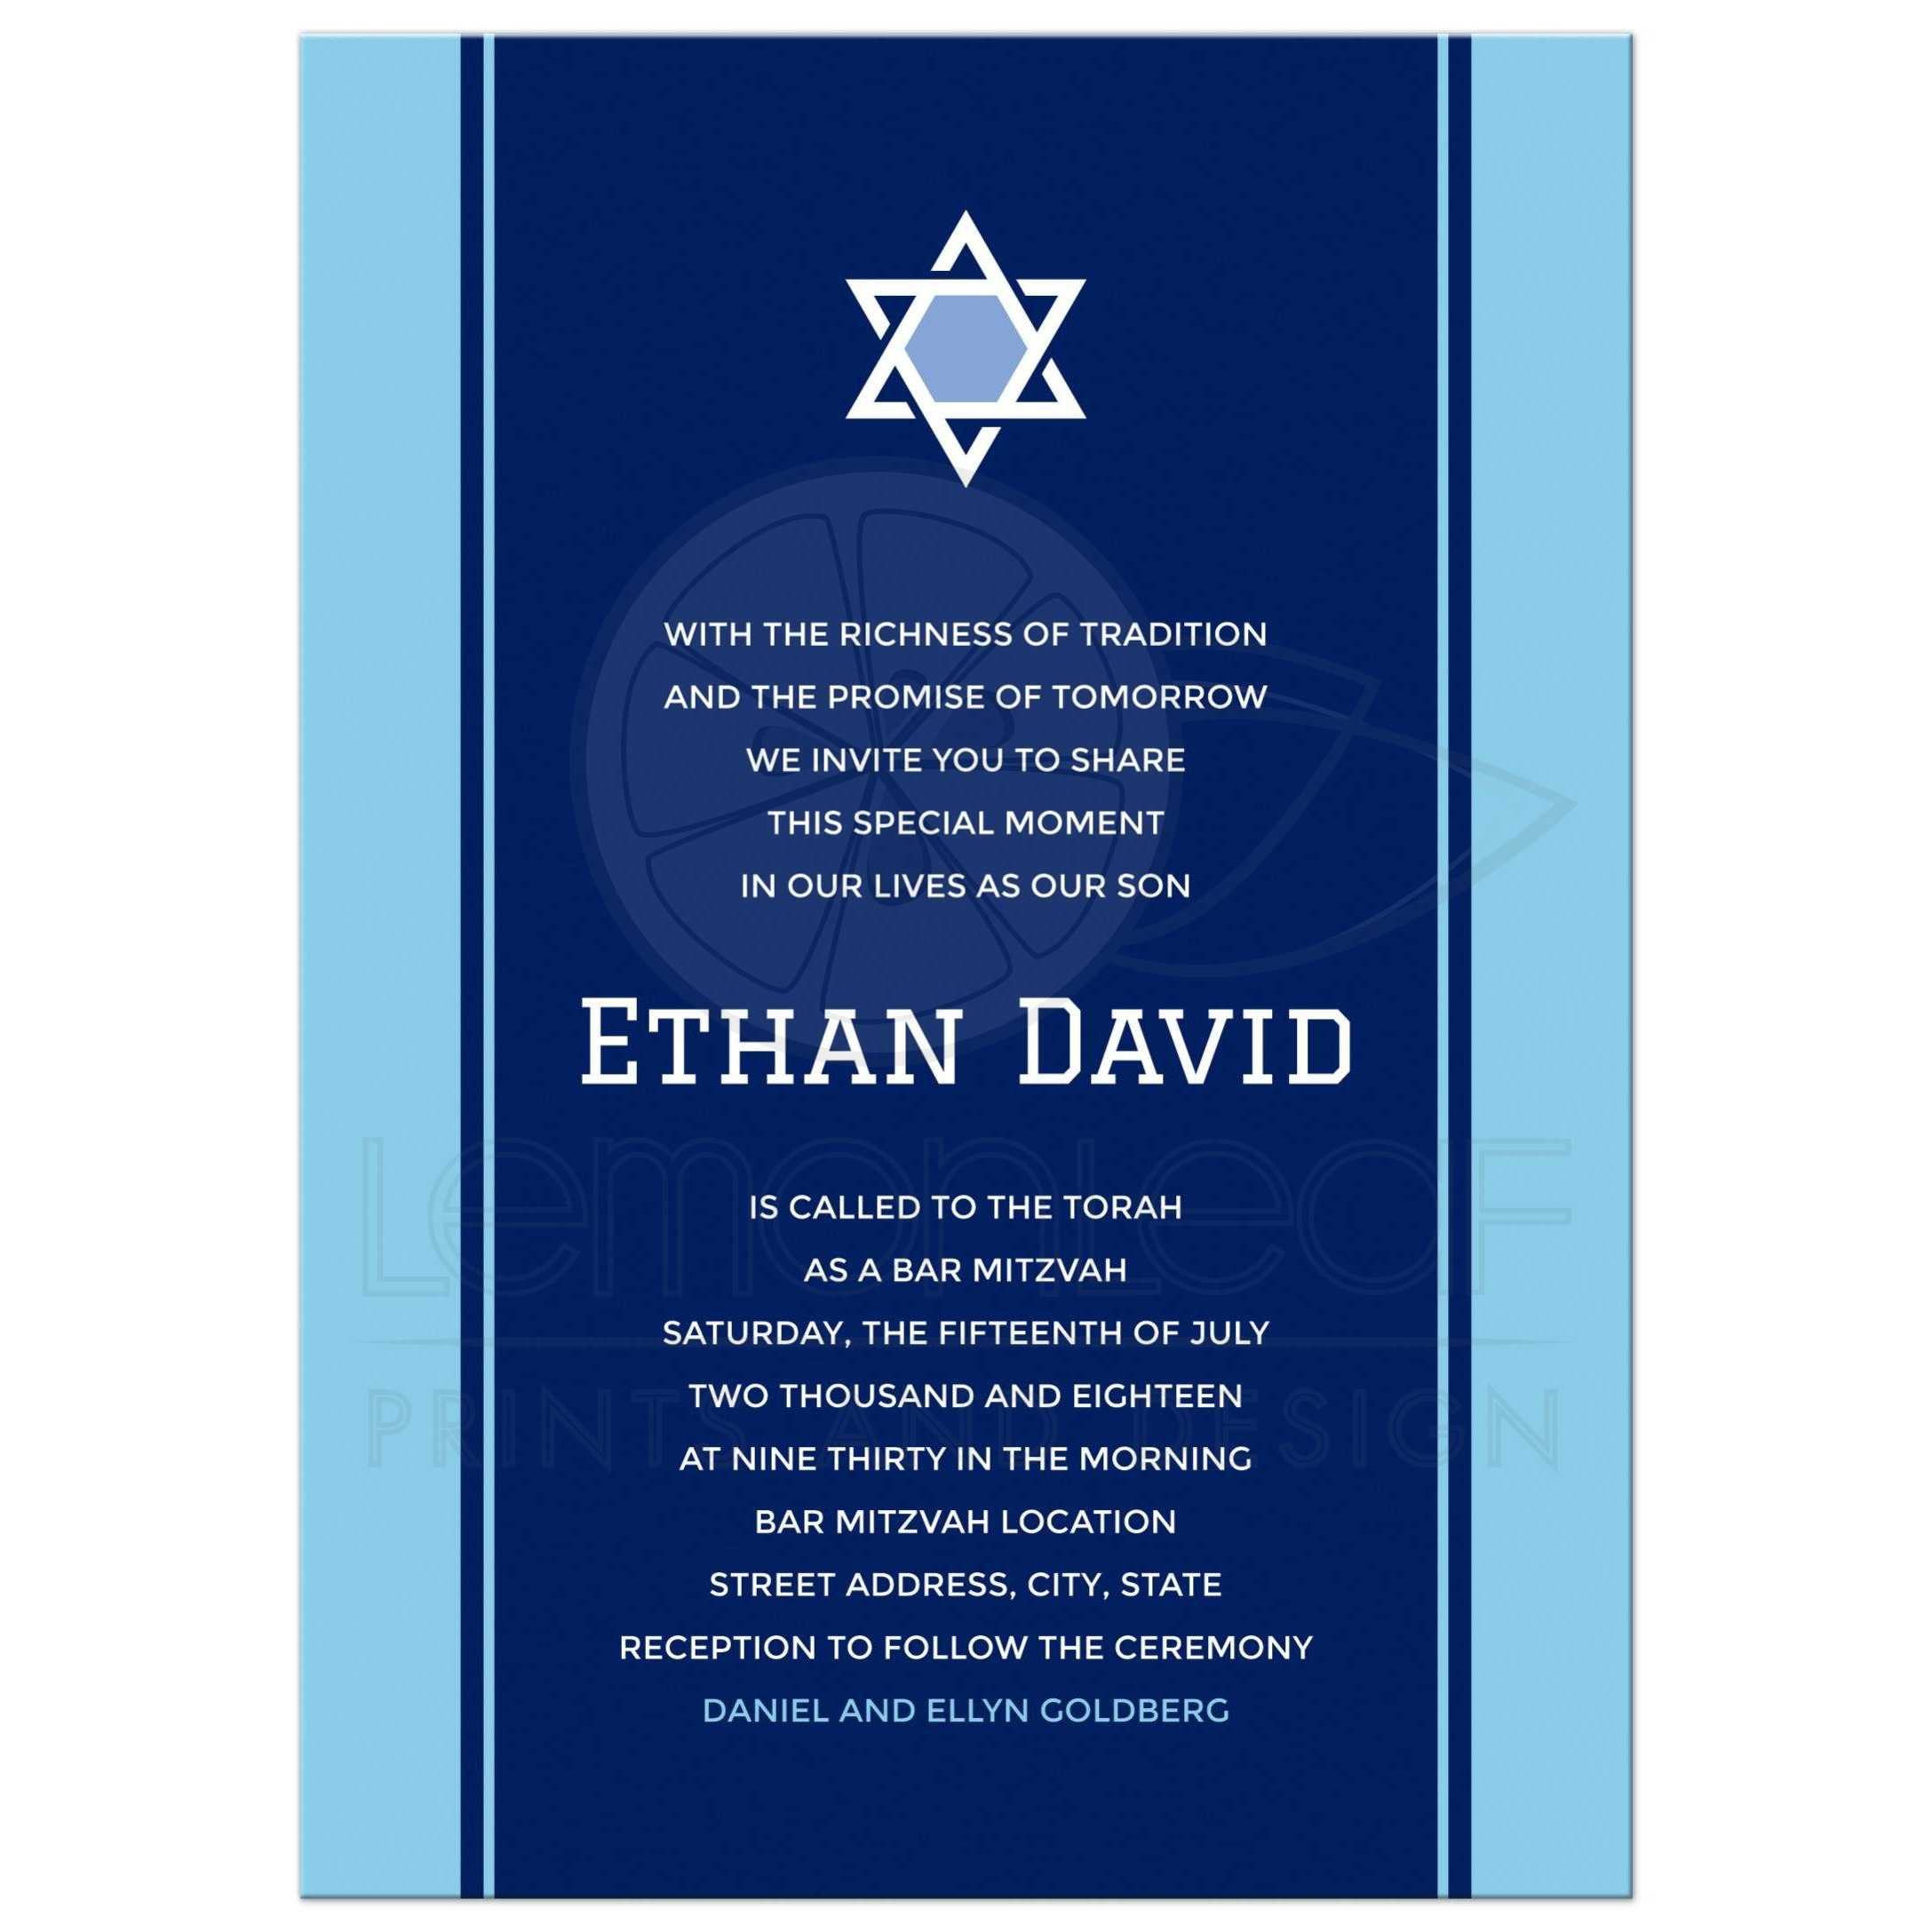 Blue Bar Mitzvah Invitation With White Star Of David And Vertical Borders Modern Design A7 5 X7